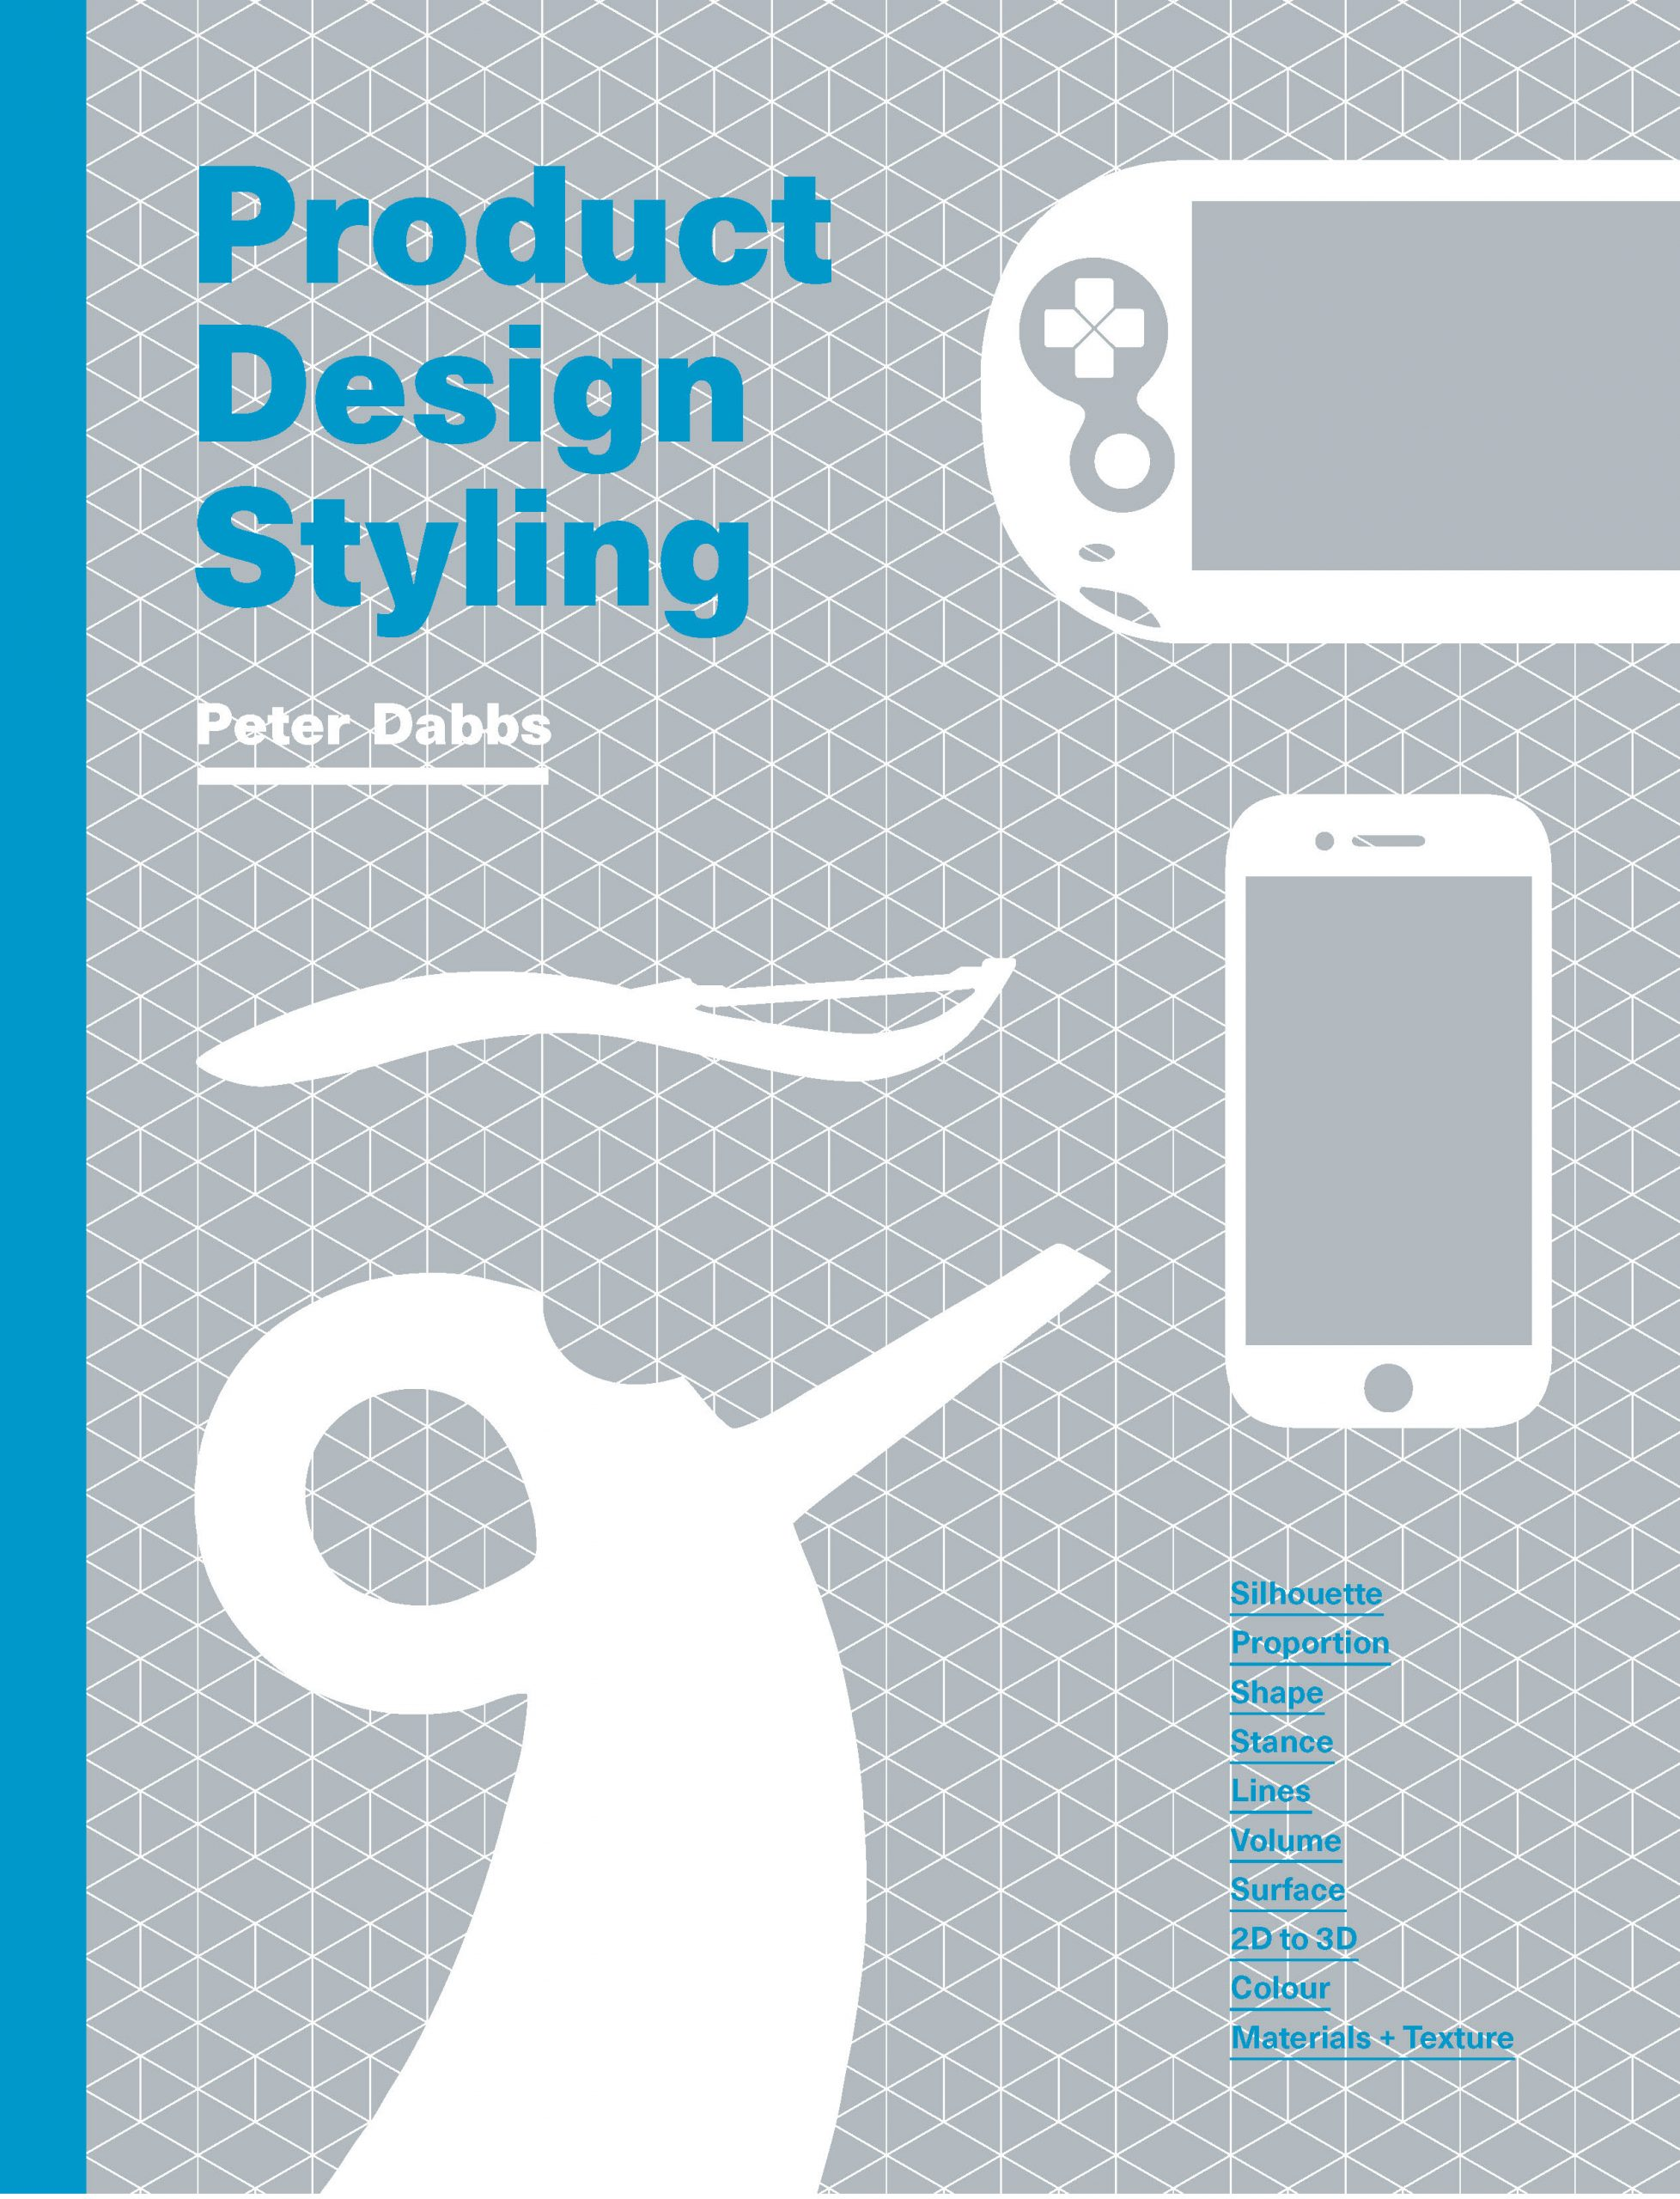 Product Design Styling - Product Thumbnail